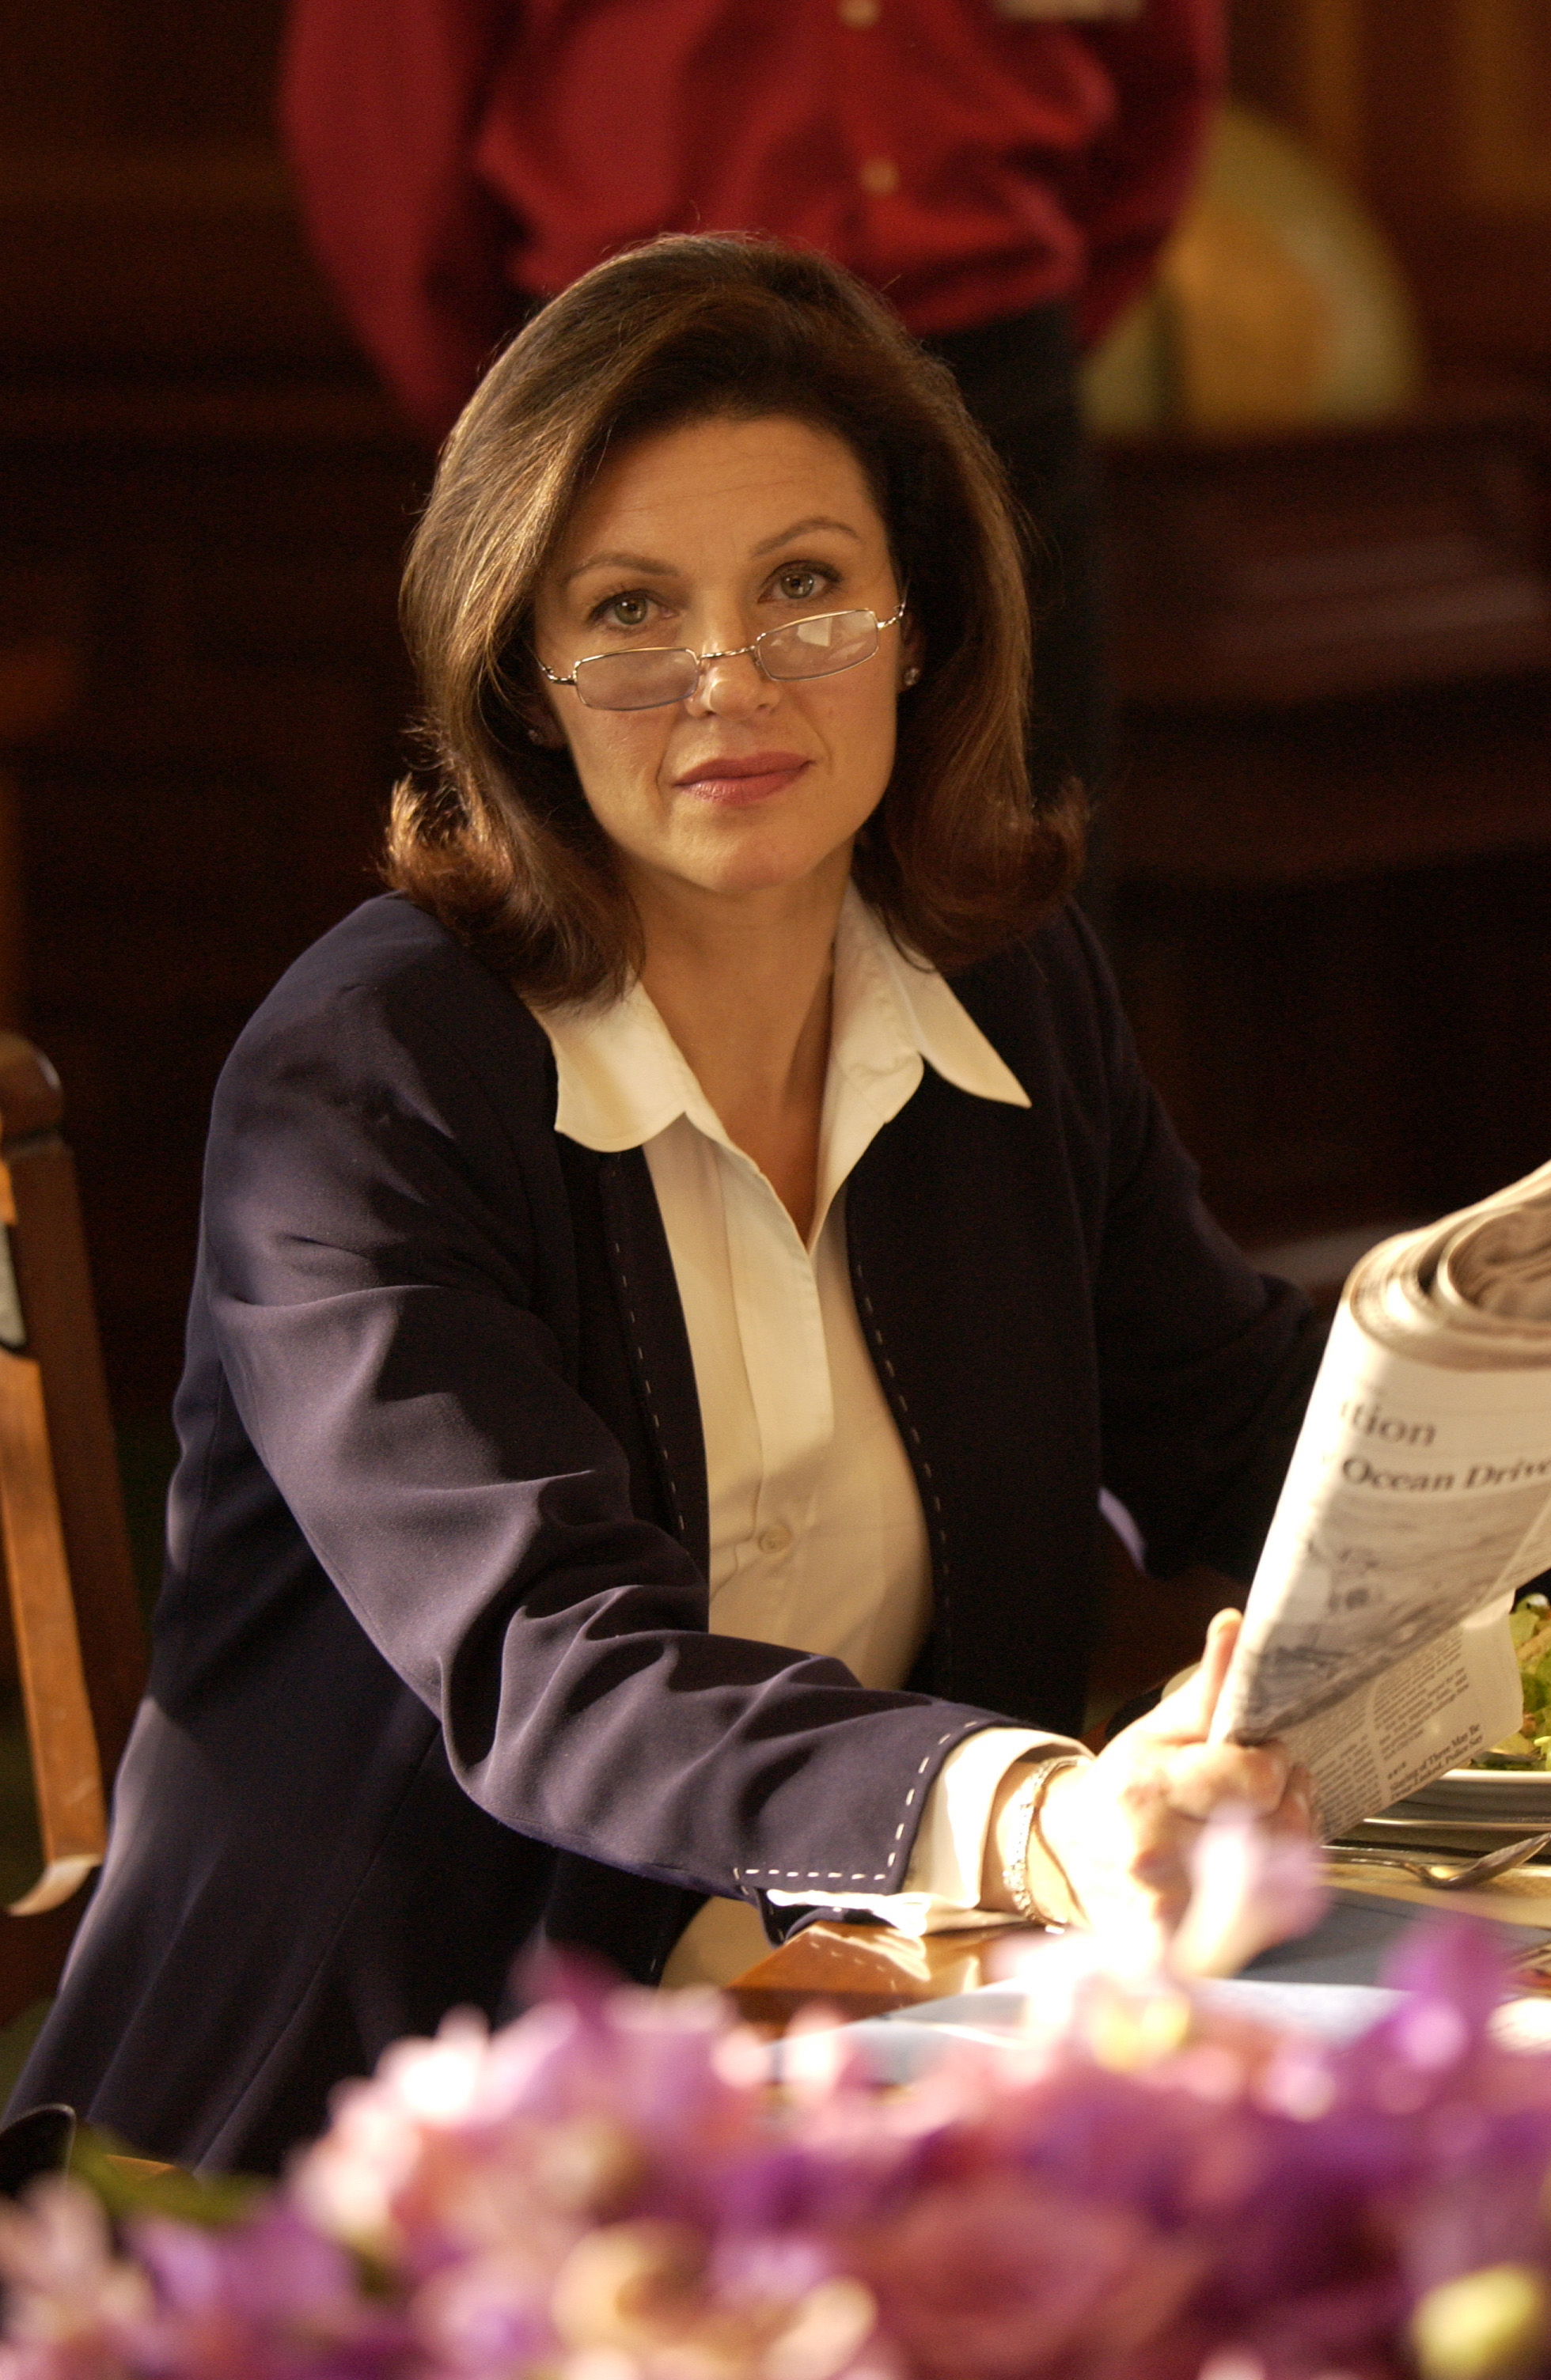 Wendy Crewson - New Photos